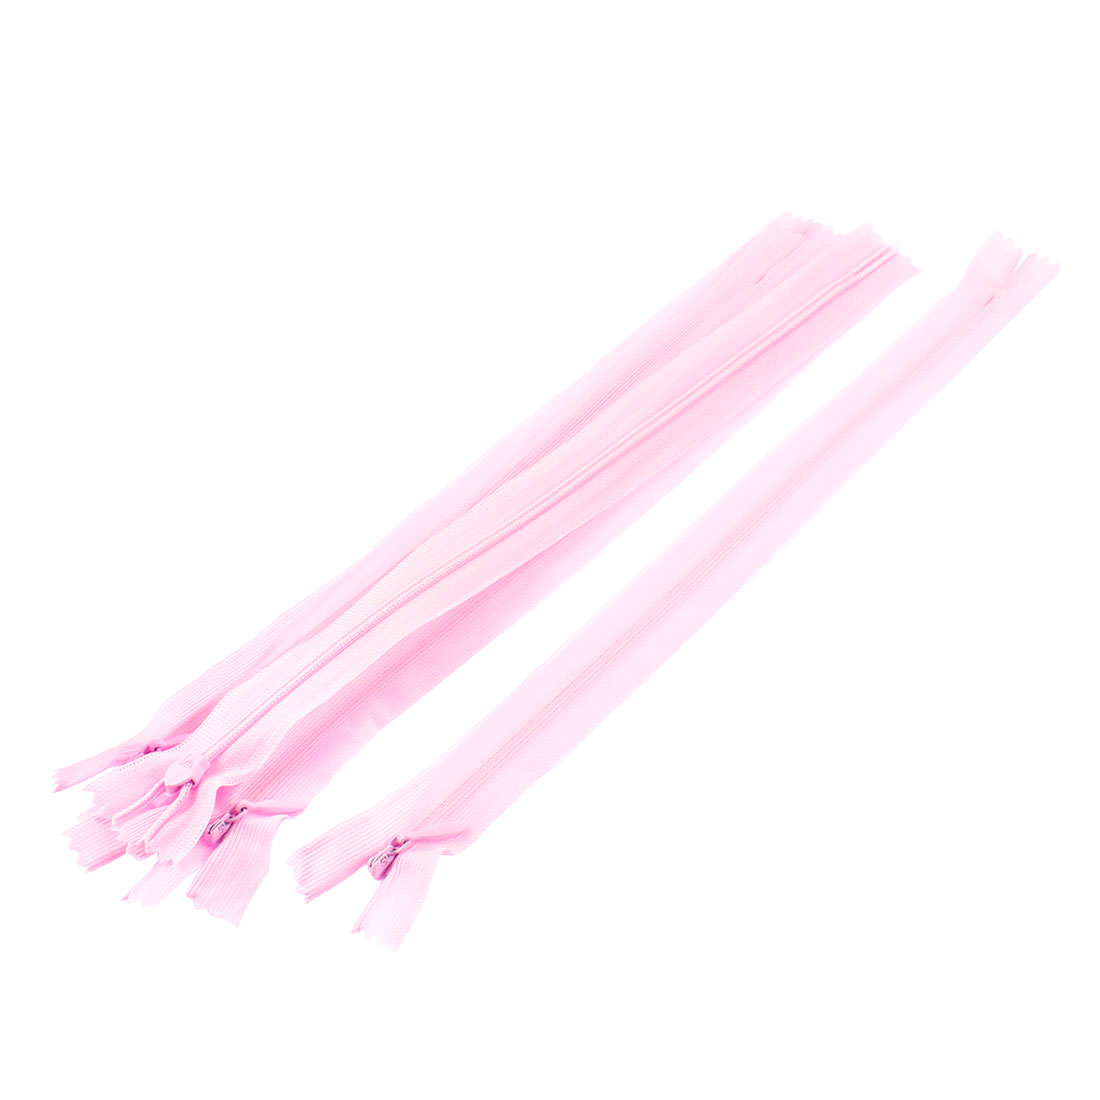 Dress Pants Closed End Nylon Zippers Tailor Sewing Craft Tool Pink 25cm 5 Pcs